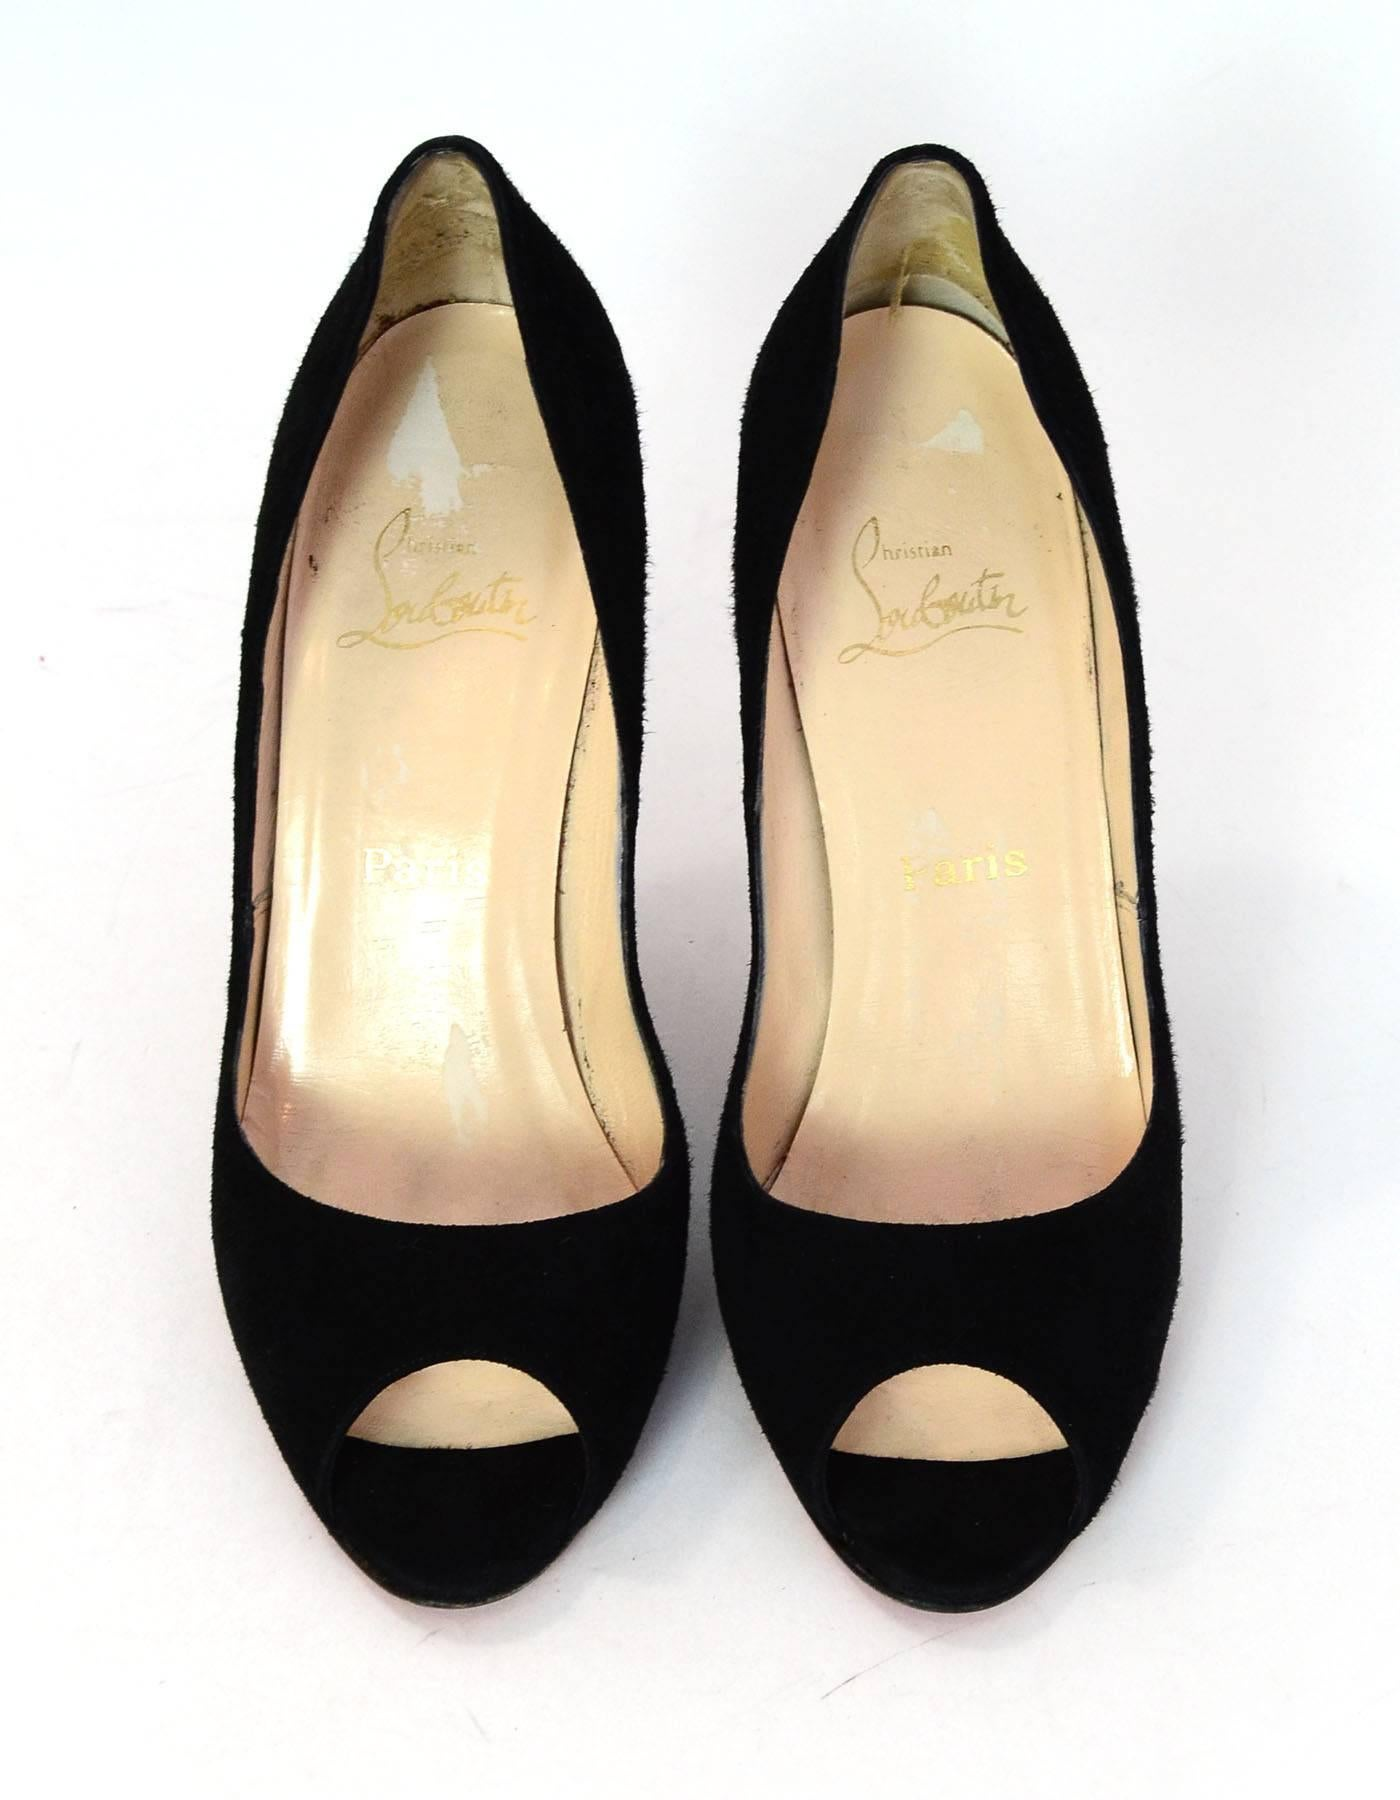 5eb9c02d9ea9 ... closeout 6 12 christian louboutin black suede peep toe pumps sz 41 with  db at 1stdibs